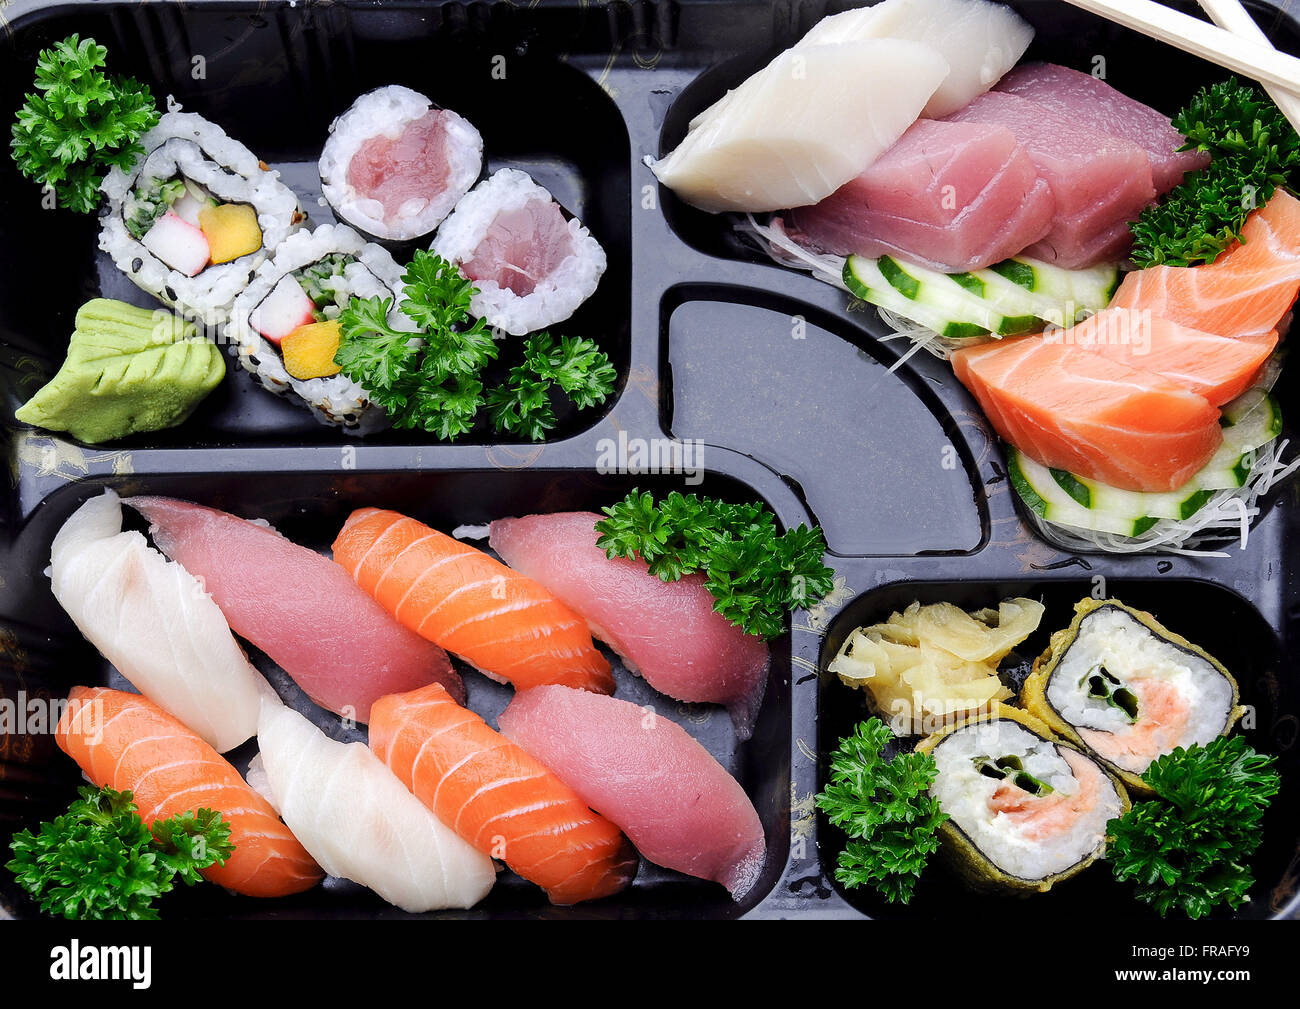 La nourriture japonaise - sushi et sashimi combinaison in restaurant Photo Stock